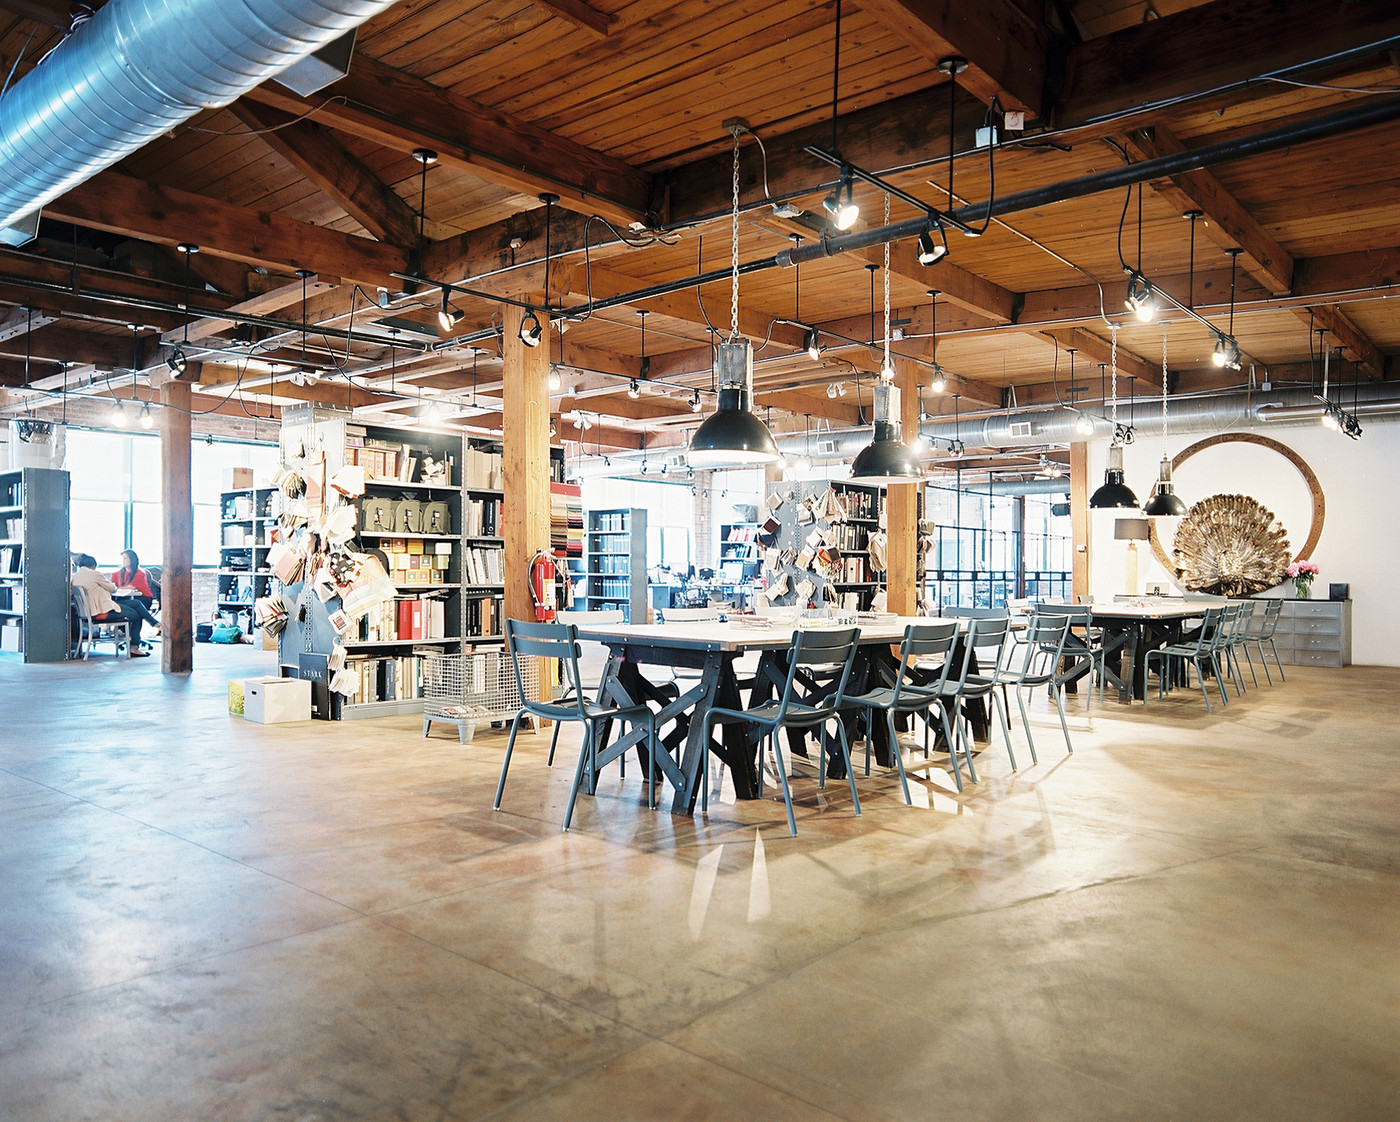 Urban retail store design photos 17 of 19 for Industrial office design